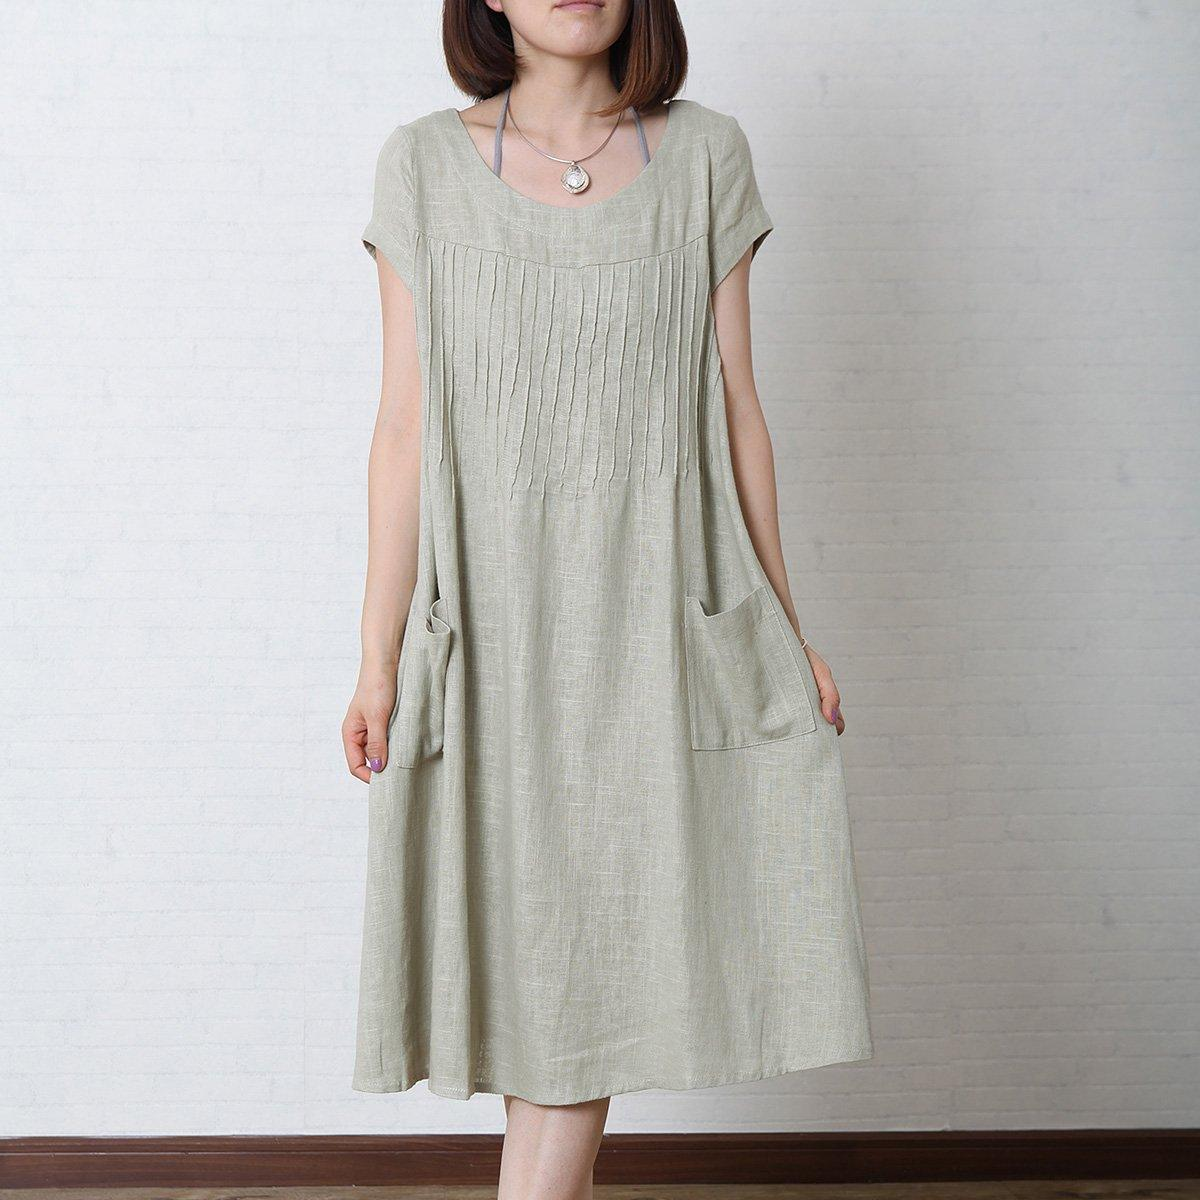 Gray loose linen summer maxi dress oversize cotton sundress